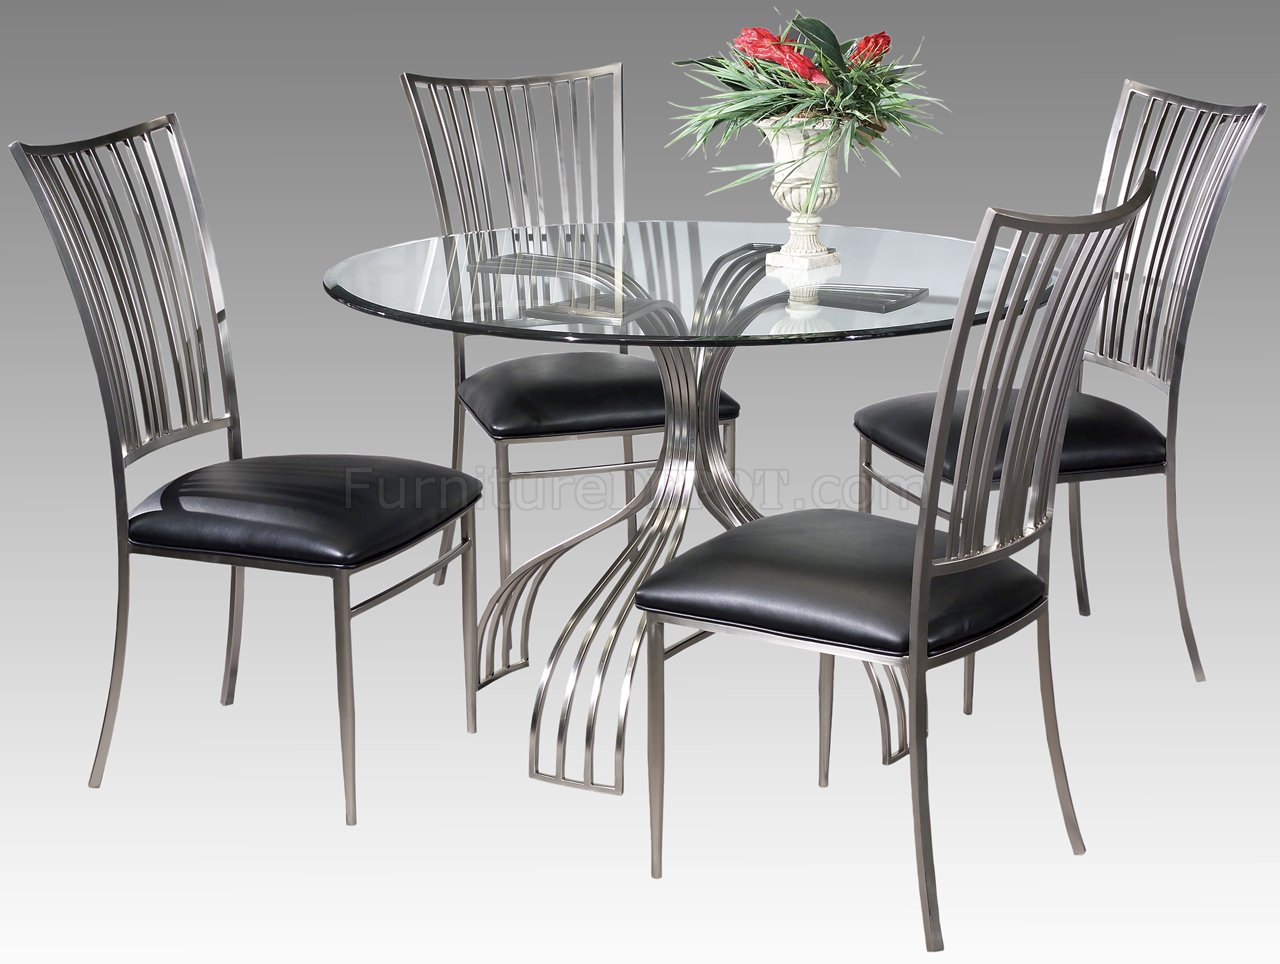 Brushed nickel frame modern 5 piece dinette set for Kitchen tables near me